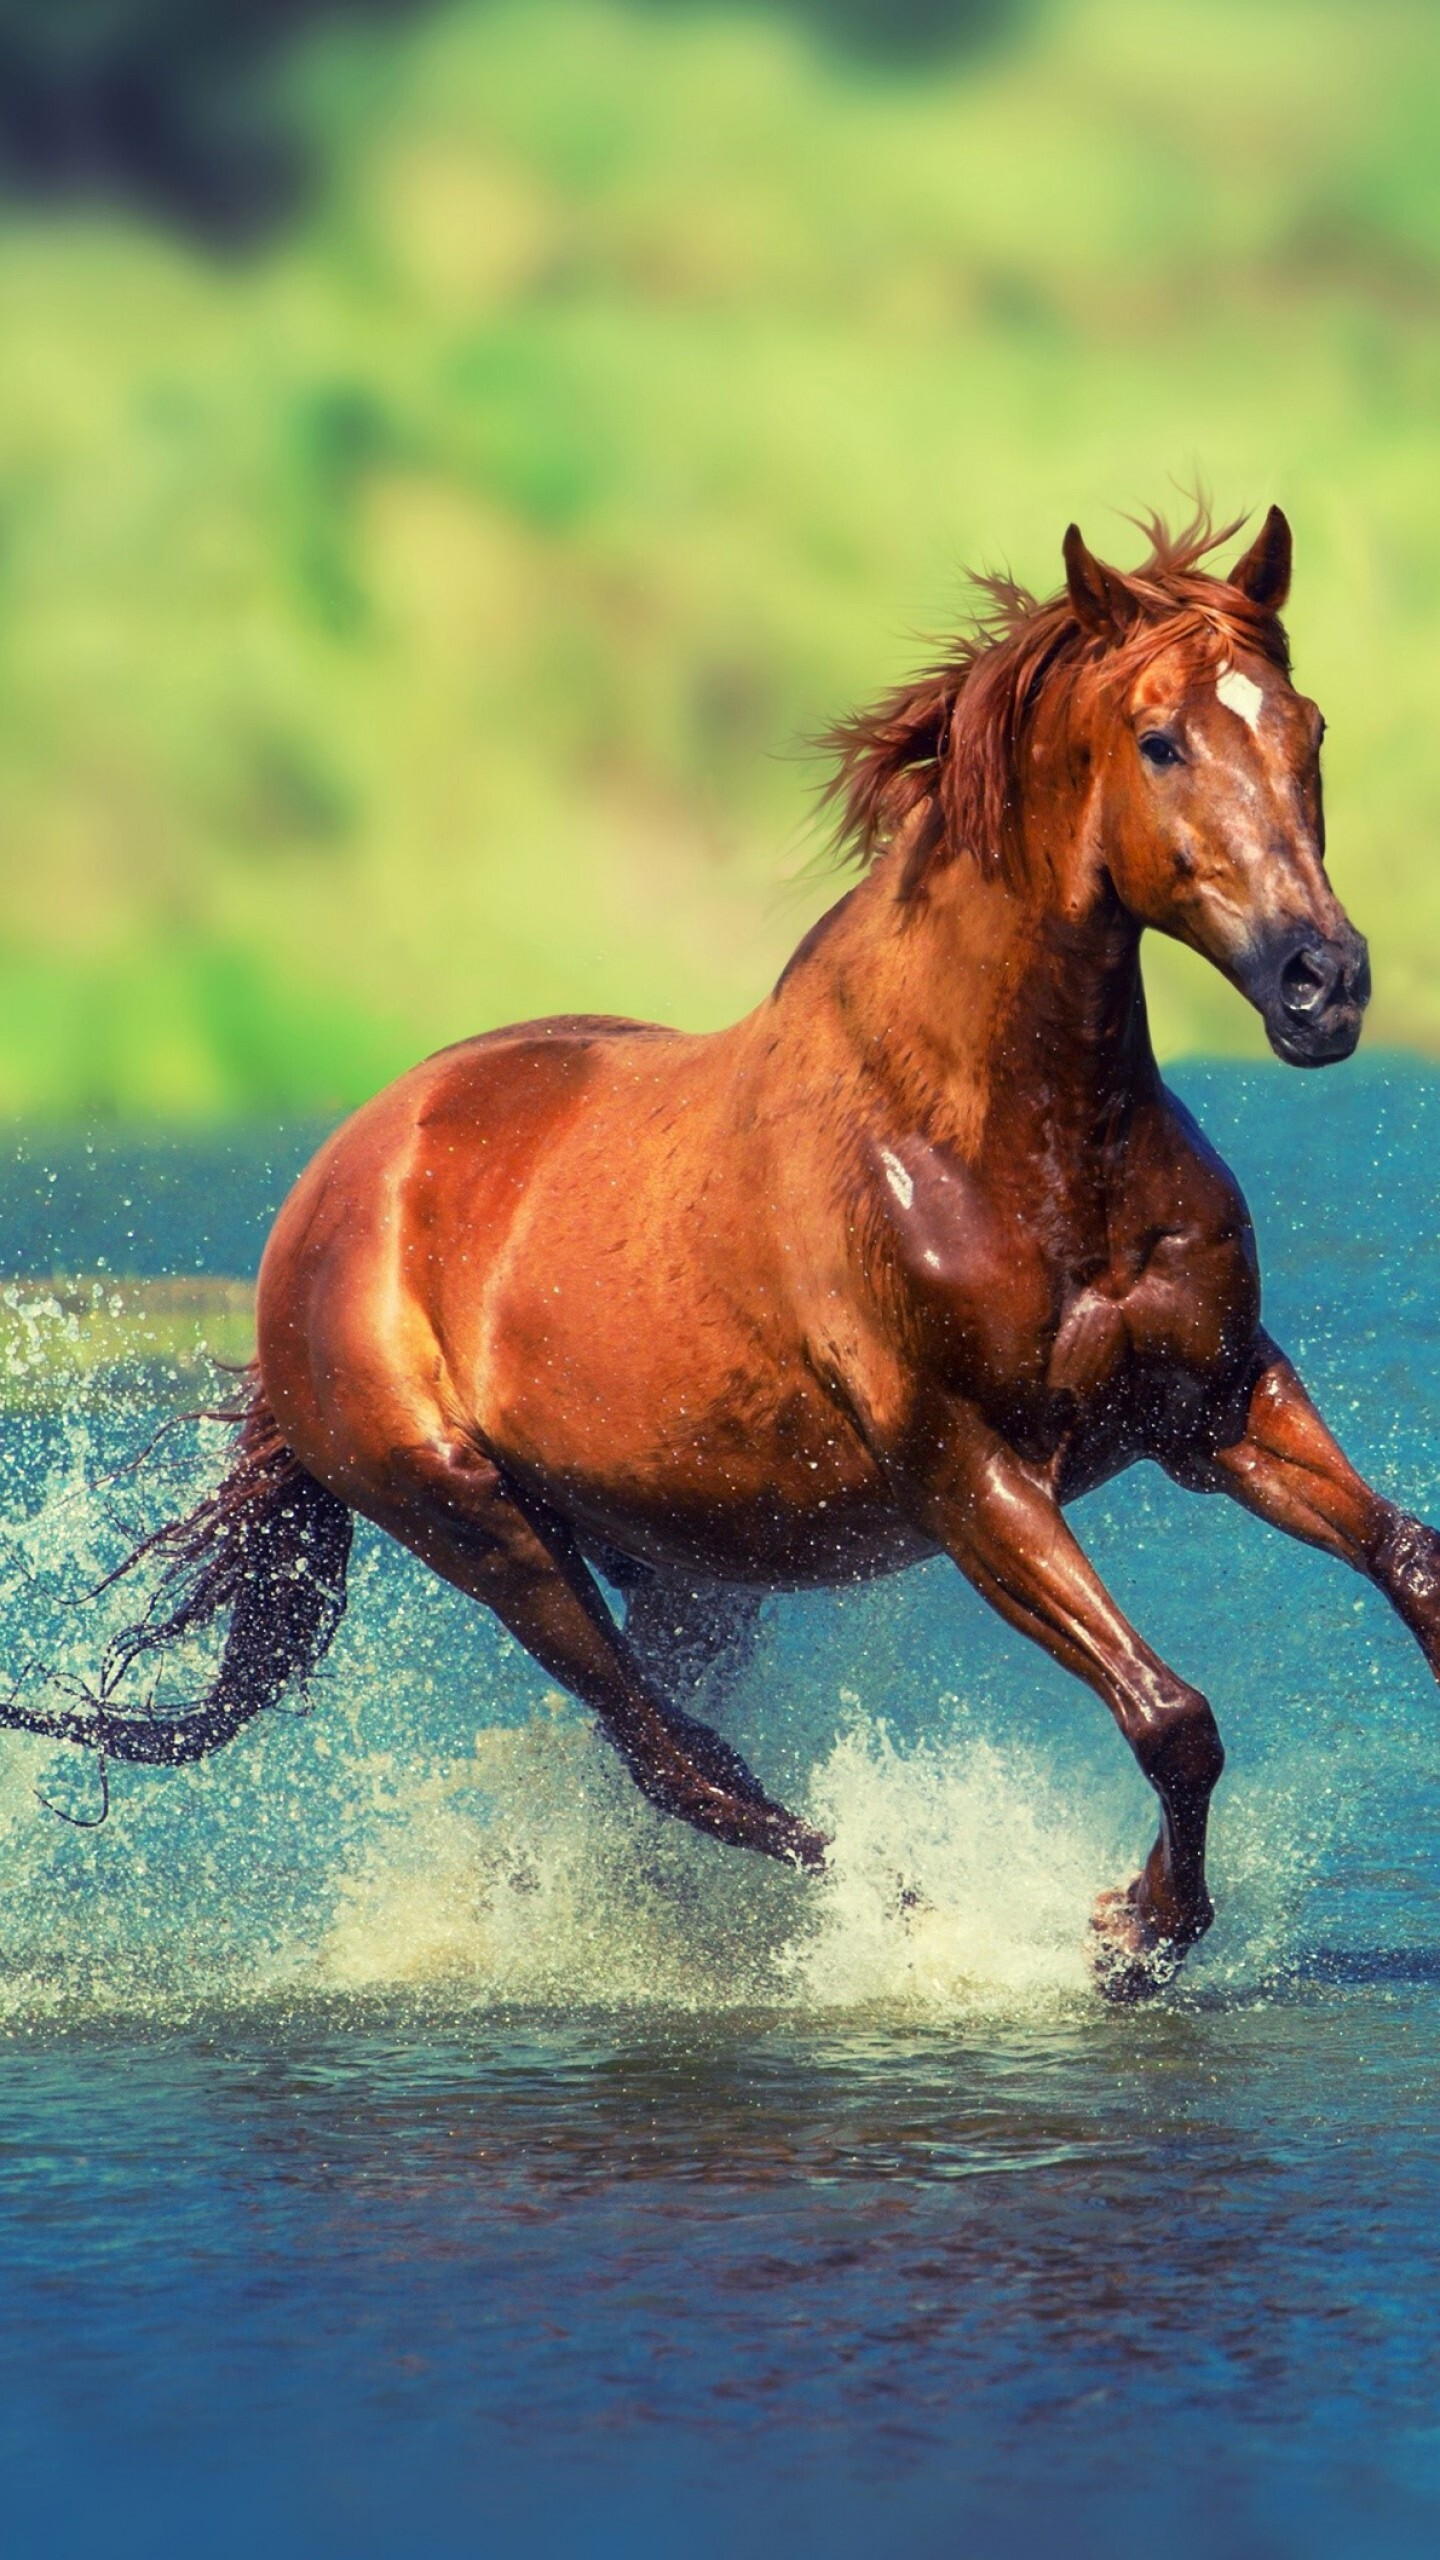 Horse Running in Water Wallpaper | Wallpapers Share